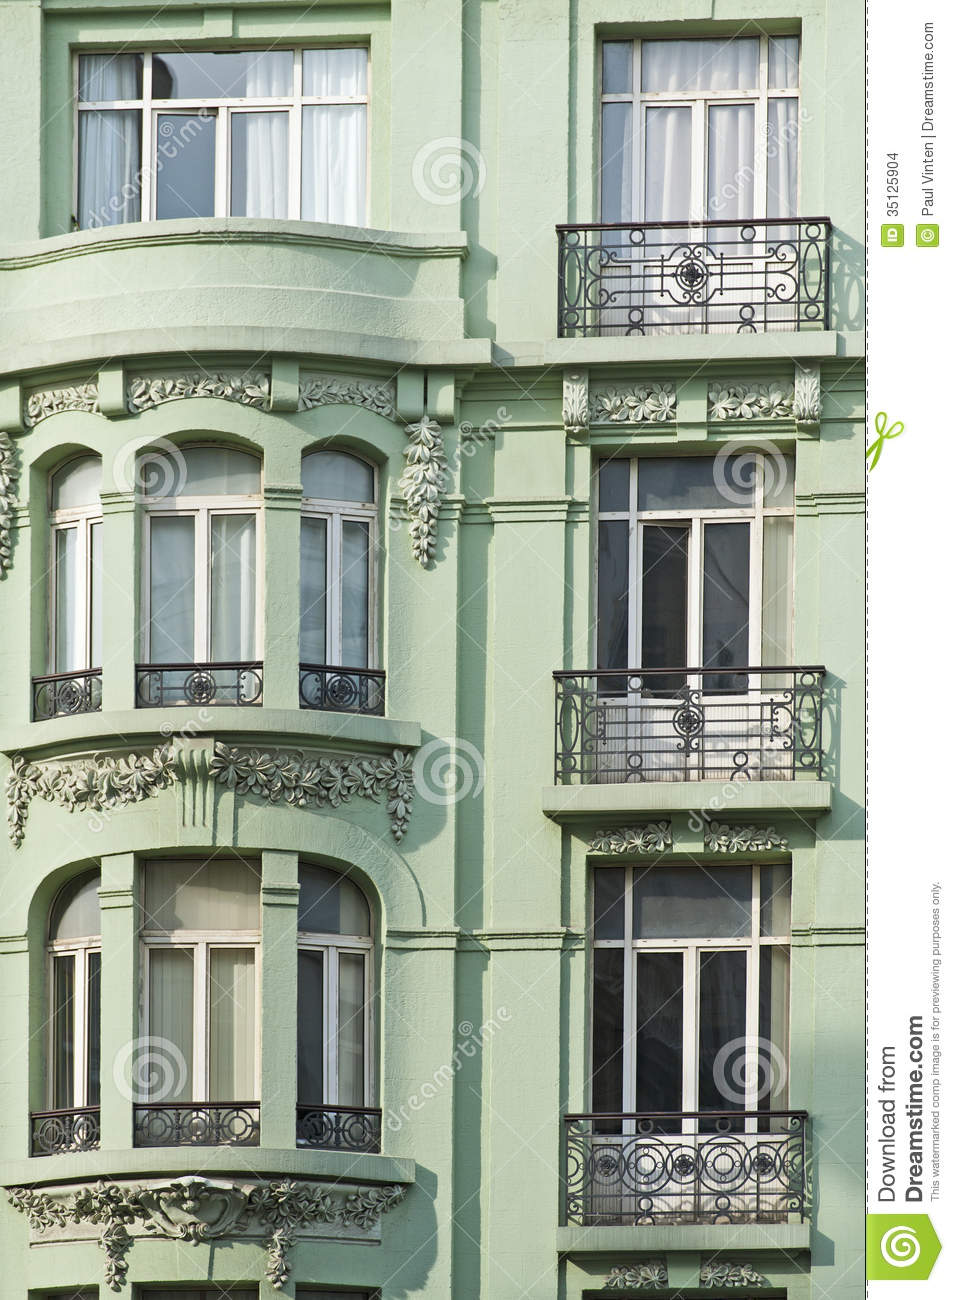 Exterior Wall Of An Apartment Building Stock Photo Image